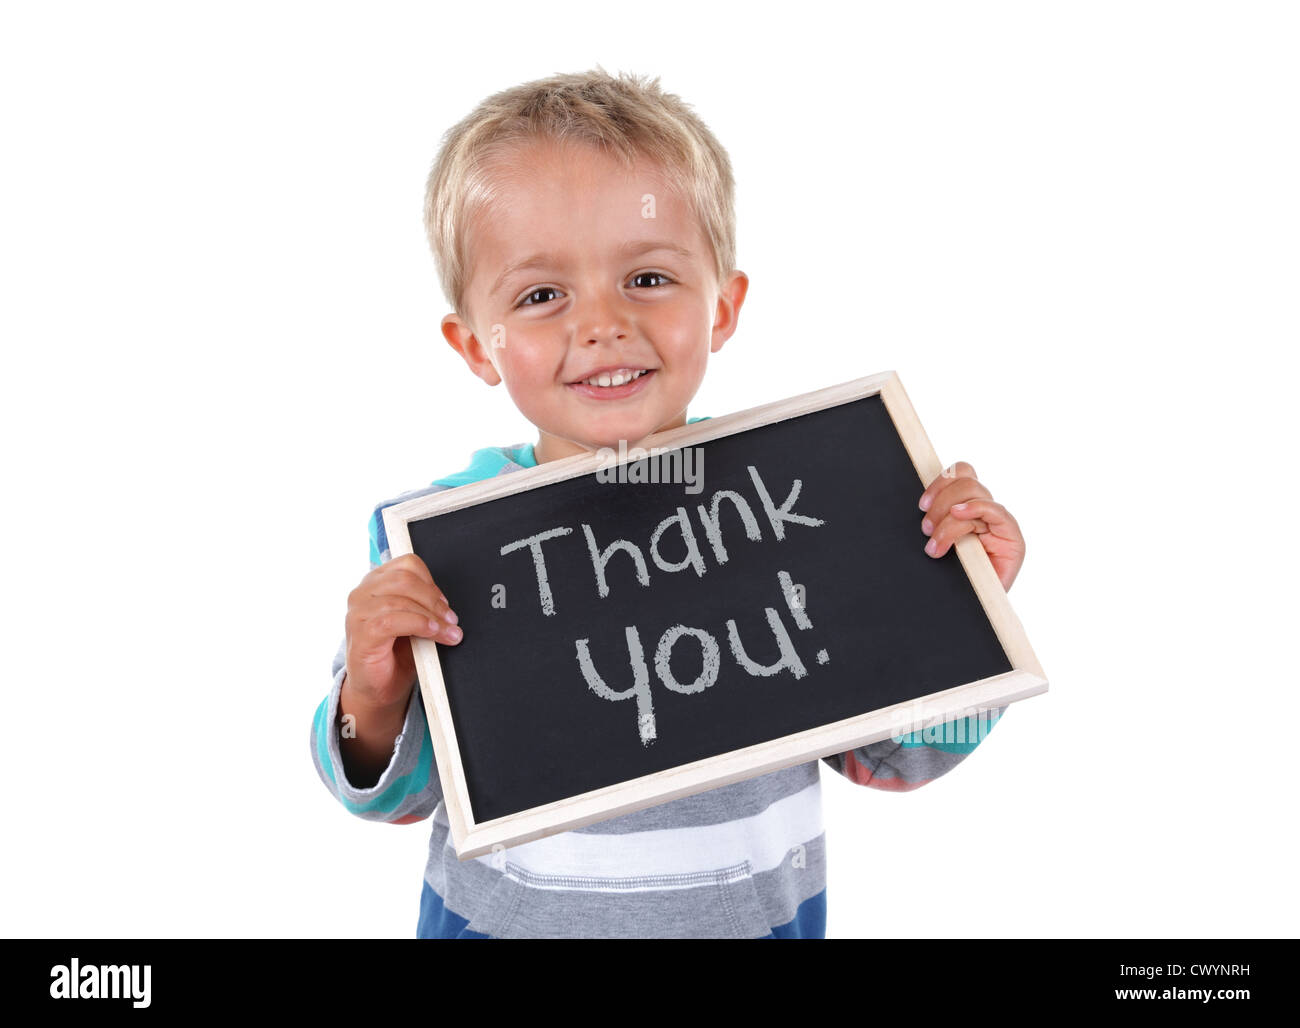 Thank you sign - Stock Image